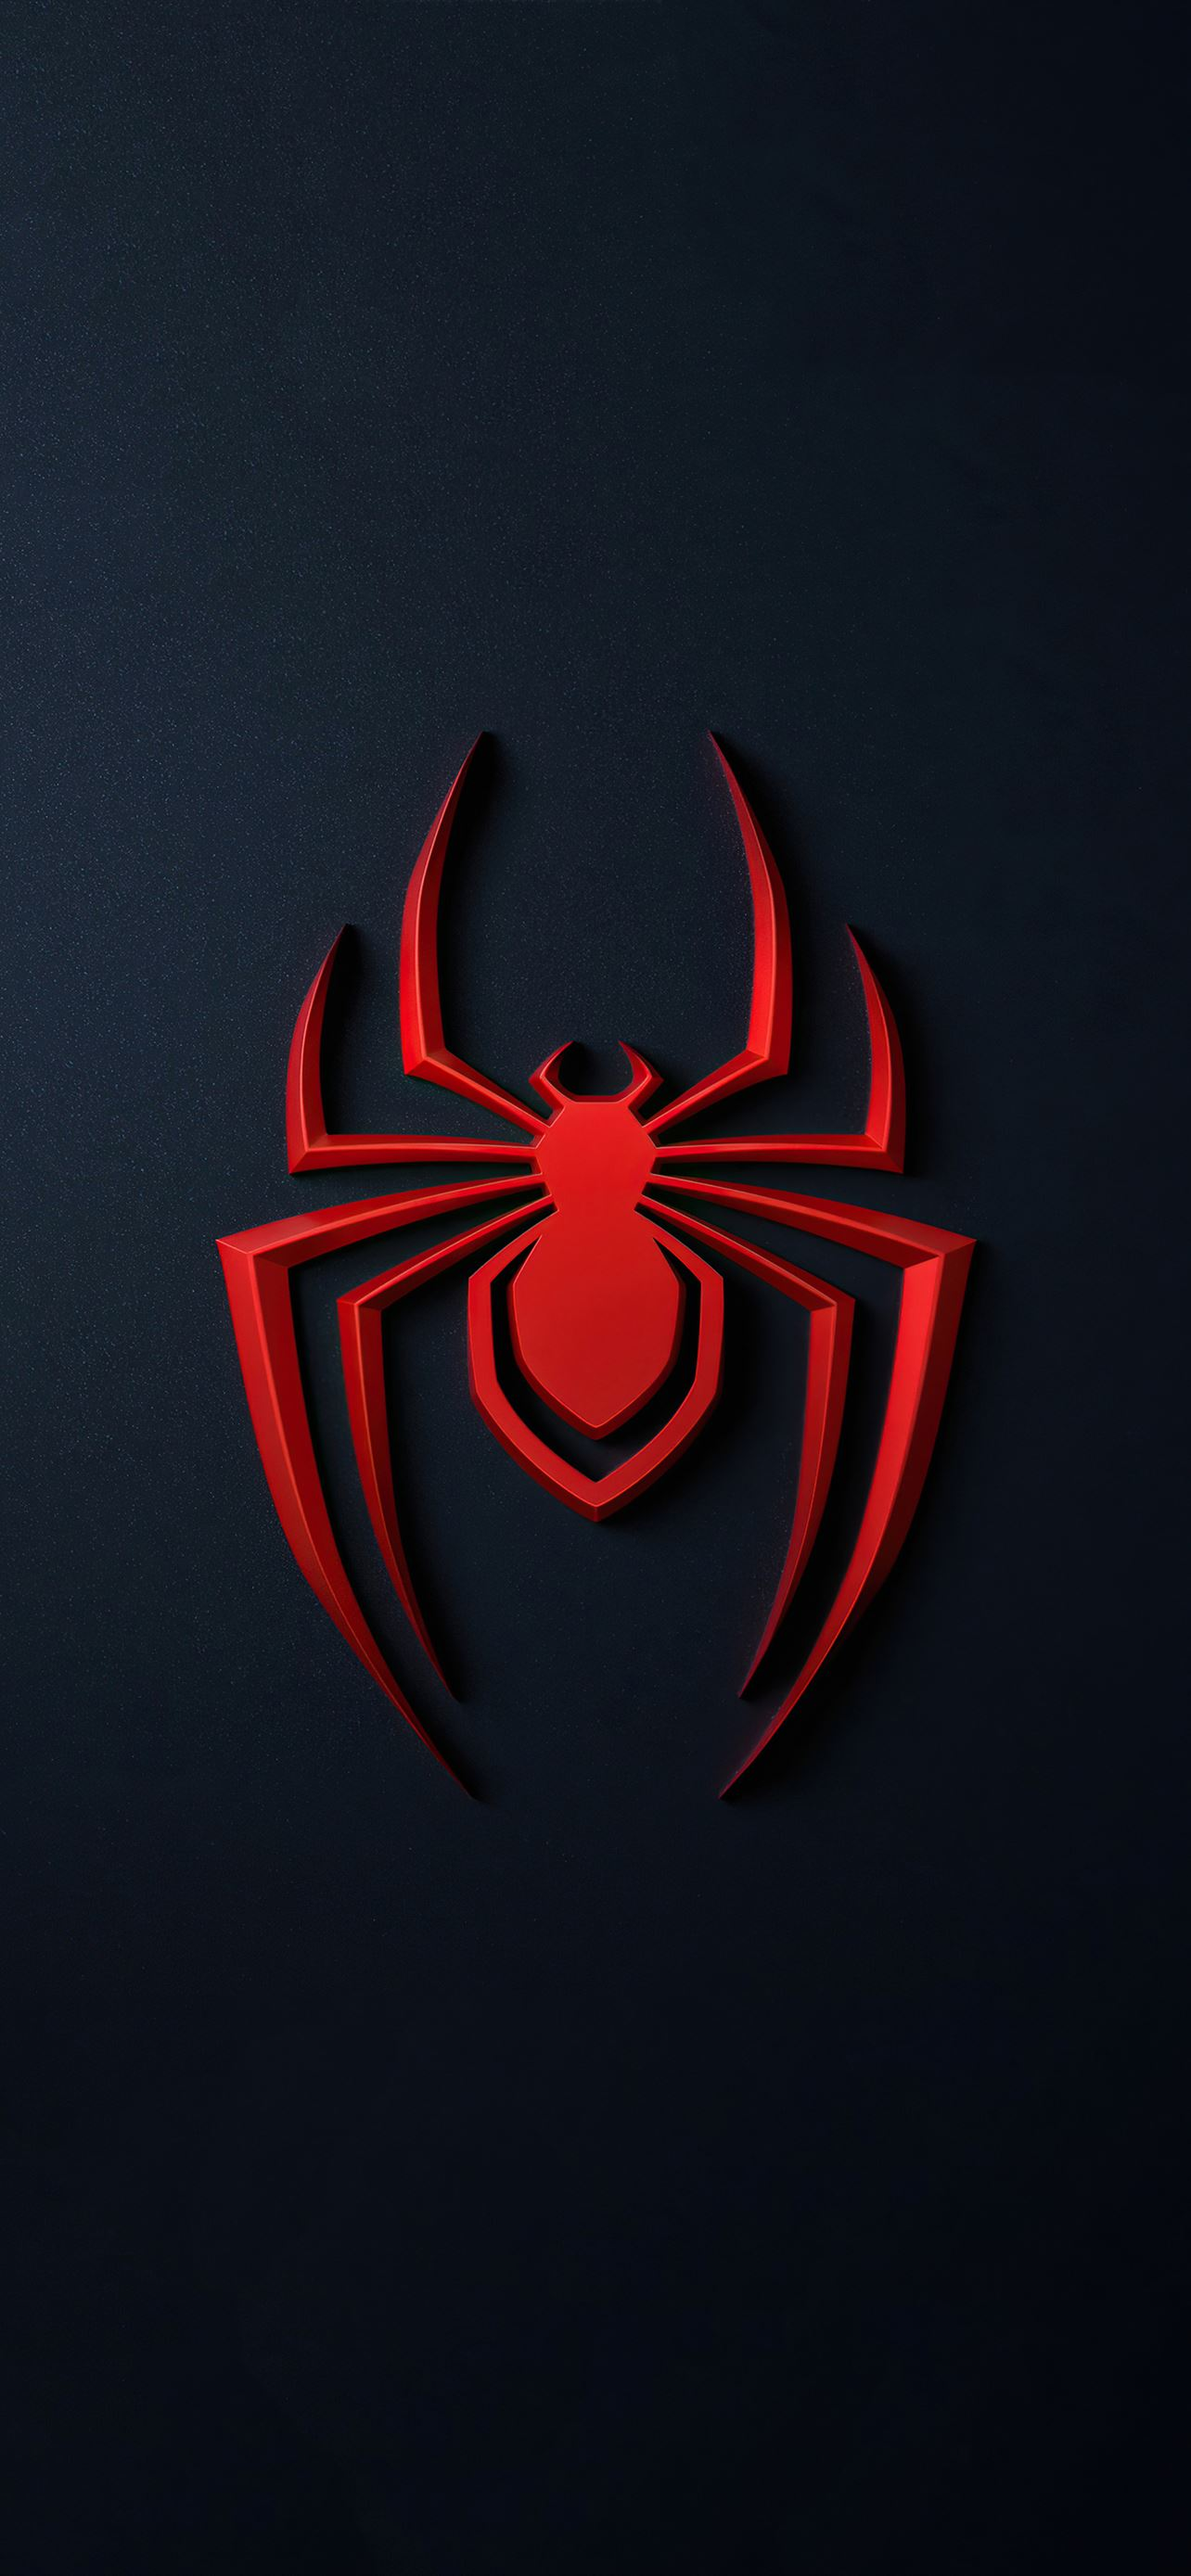 Spider Man Miles Morales Logo 4k Iphone 12 Wallpapers Free Download Download wallpaper 2160x3840 spider man miles morales, spiderman, games, 2020 games, ps5 games, ps games, spiderman, marvel, hd, 4k, superheroes, behance images, backgrounds, photos and pictures for desktop,pc,android,iphones. spider man miles morales logo 4k iphone